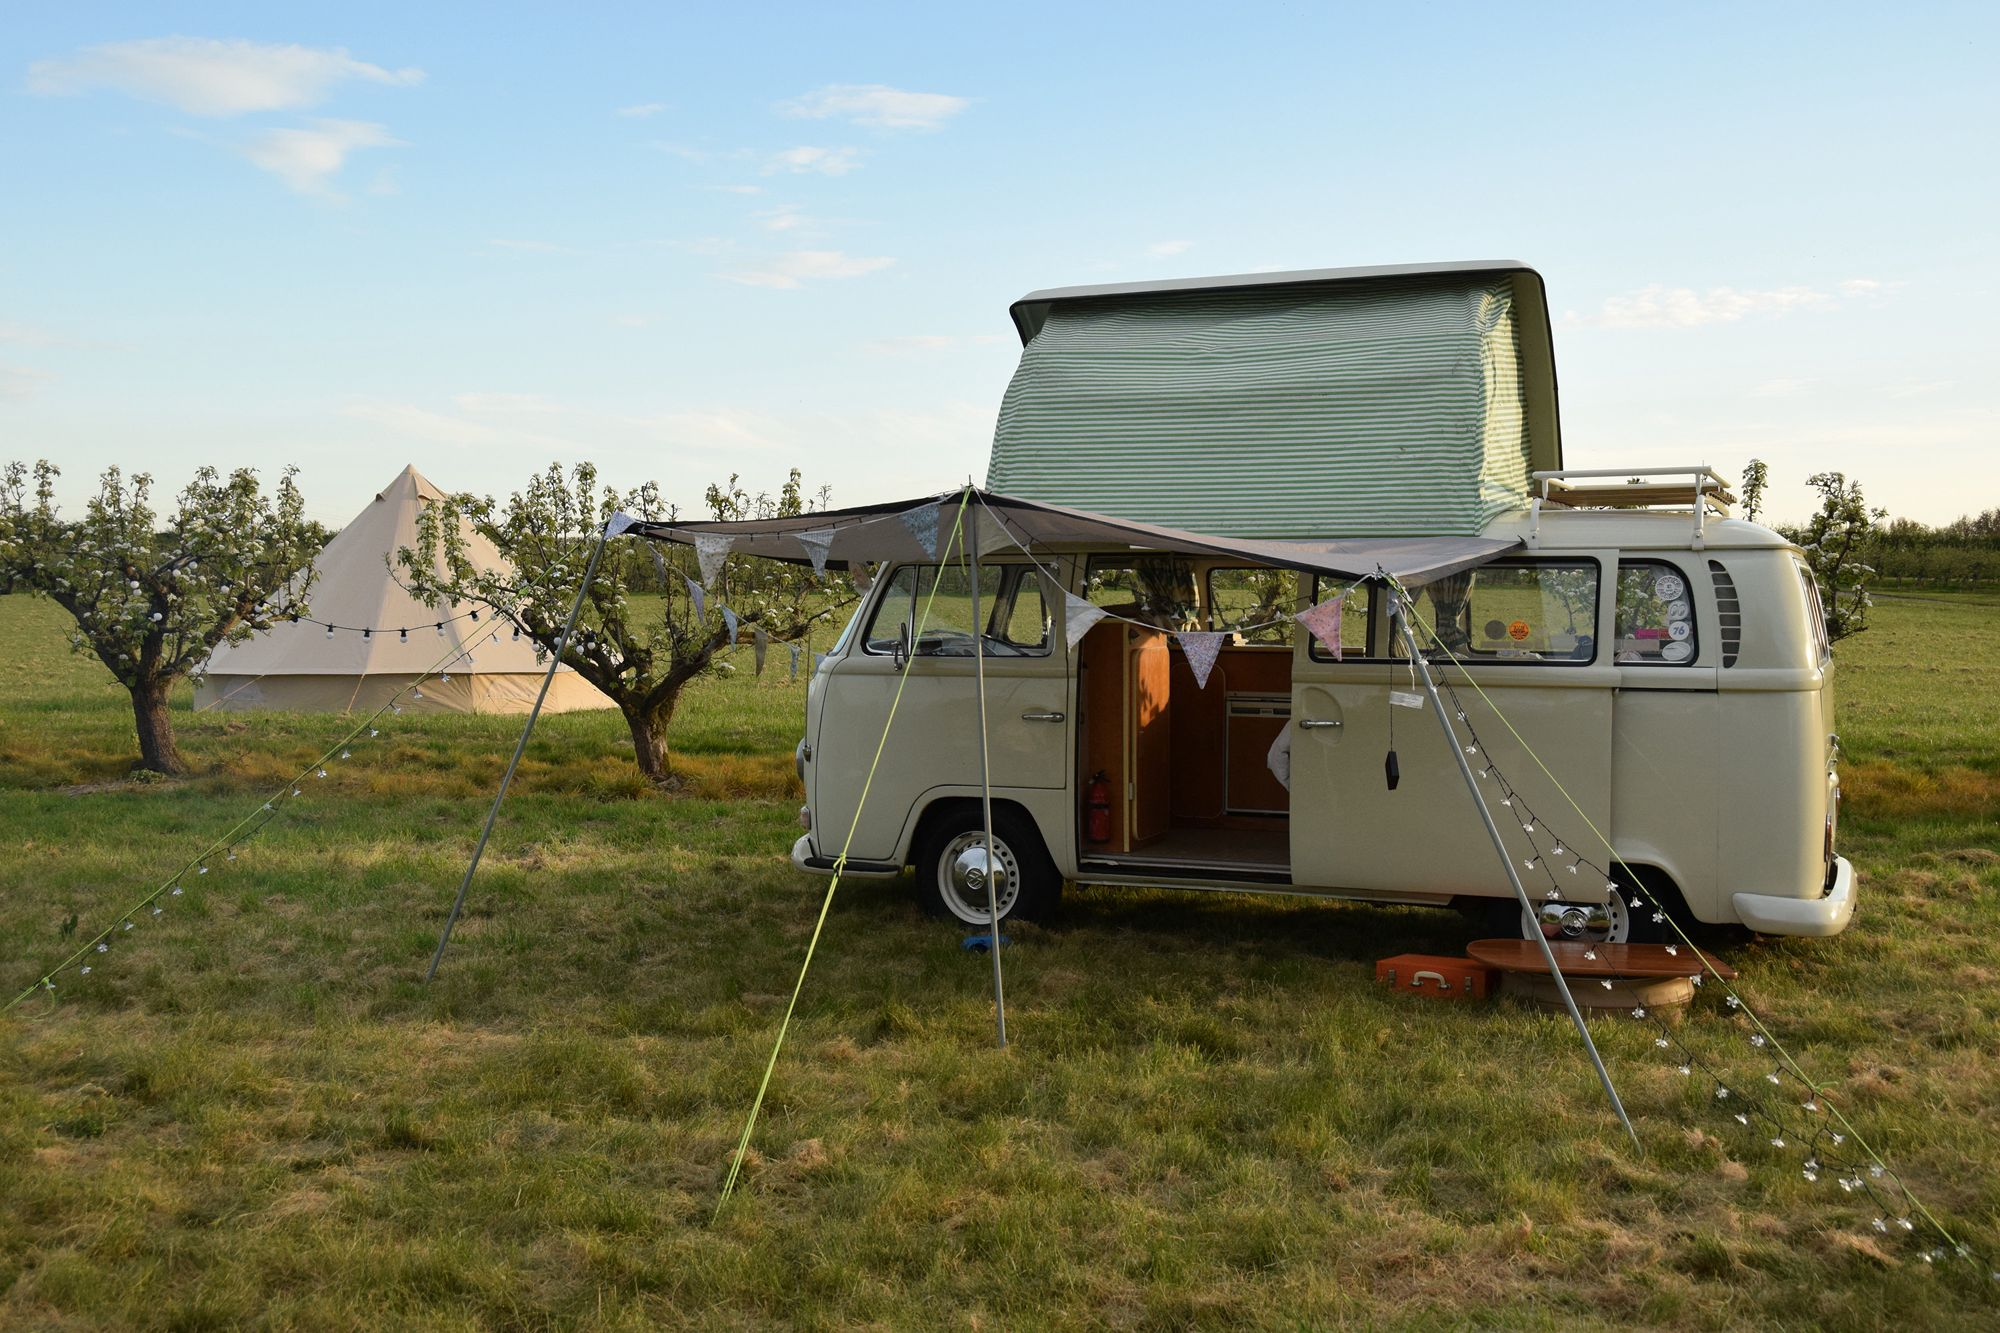 Traditional family camping and bell tent glamping on a working fruit farm, two miles from the beautiful inlet town of Sandwich in Kent.